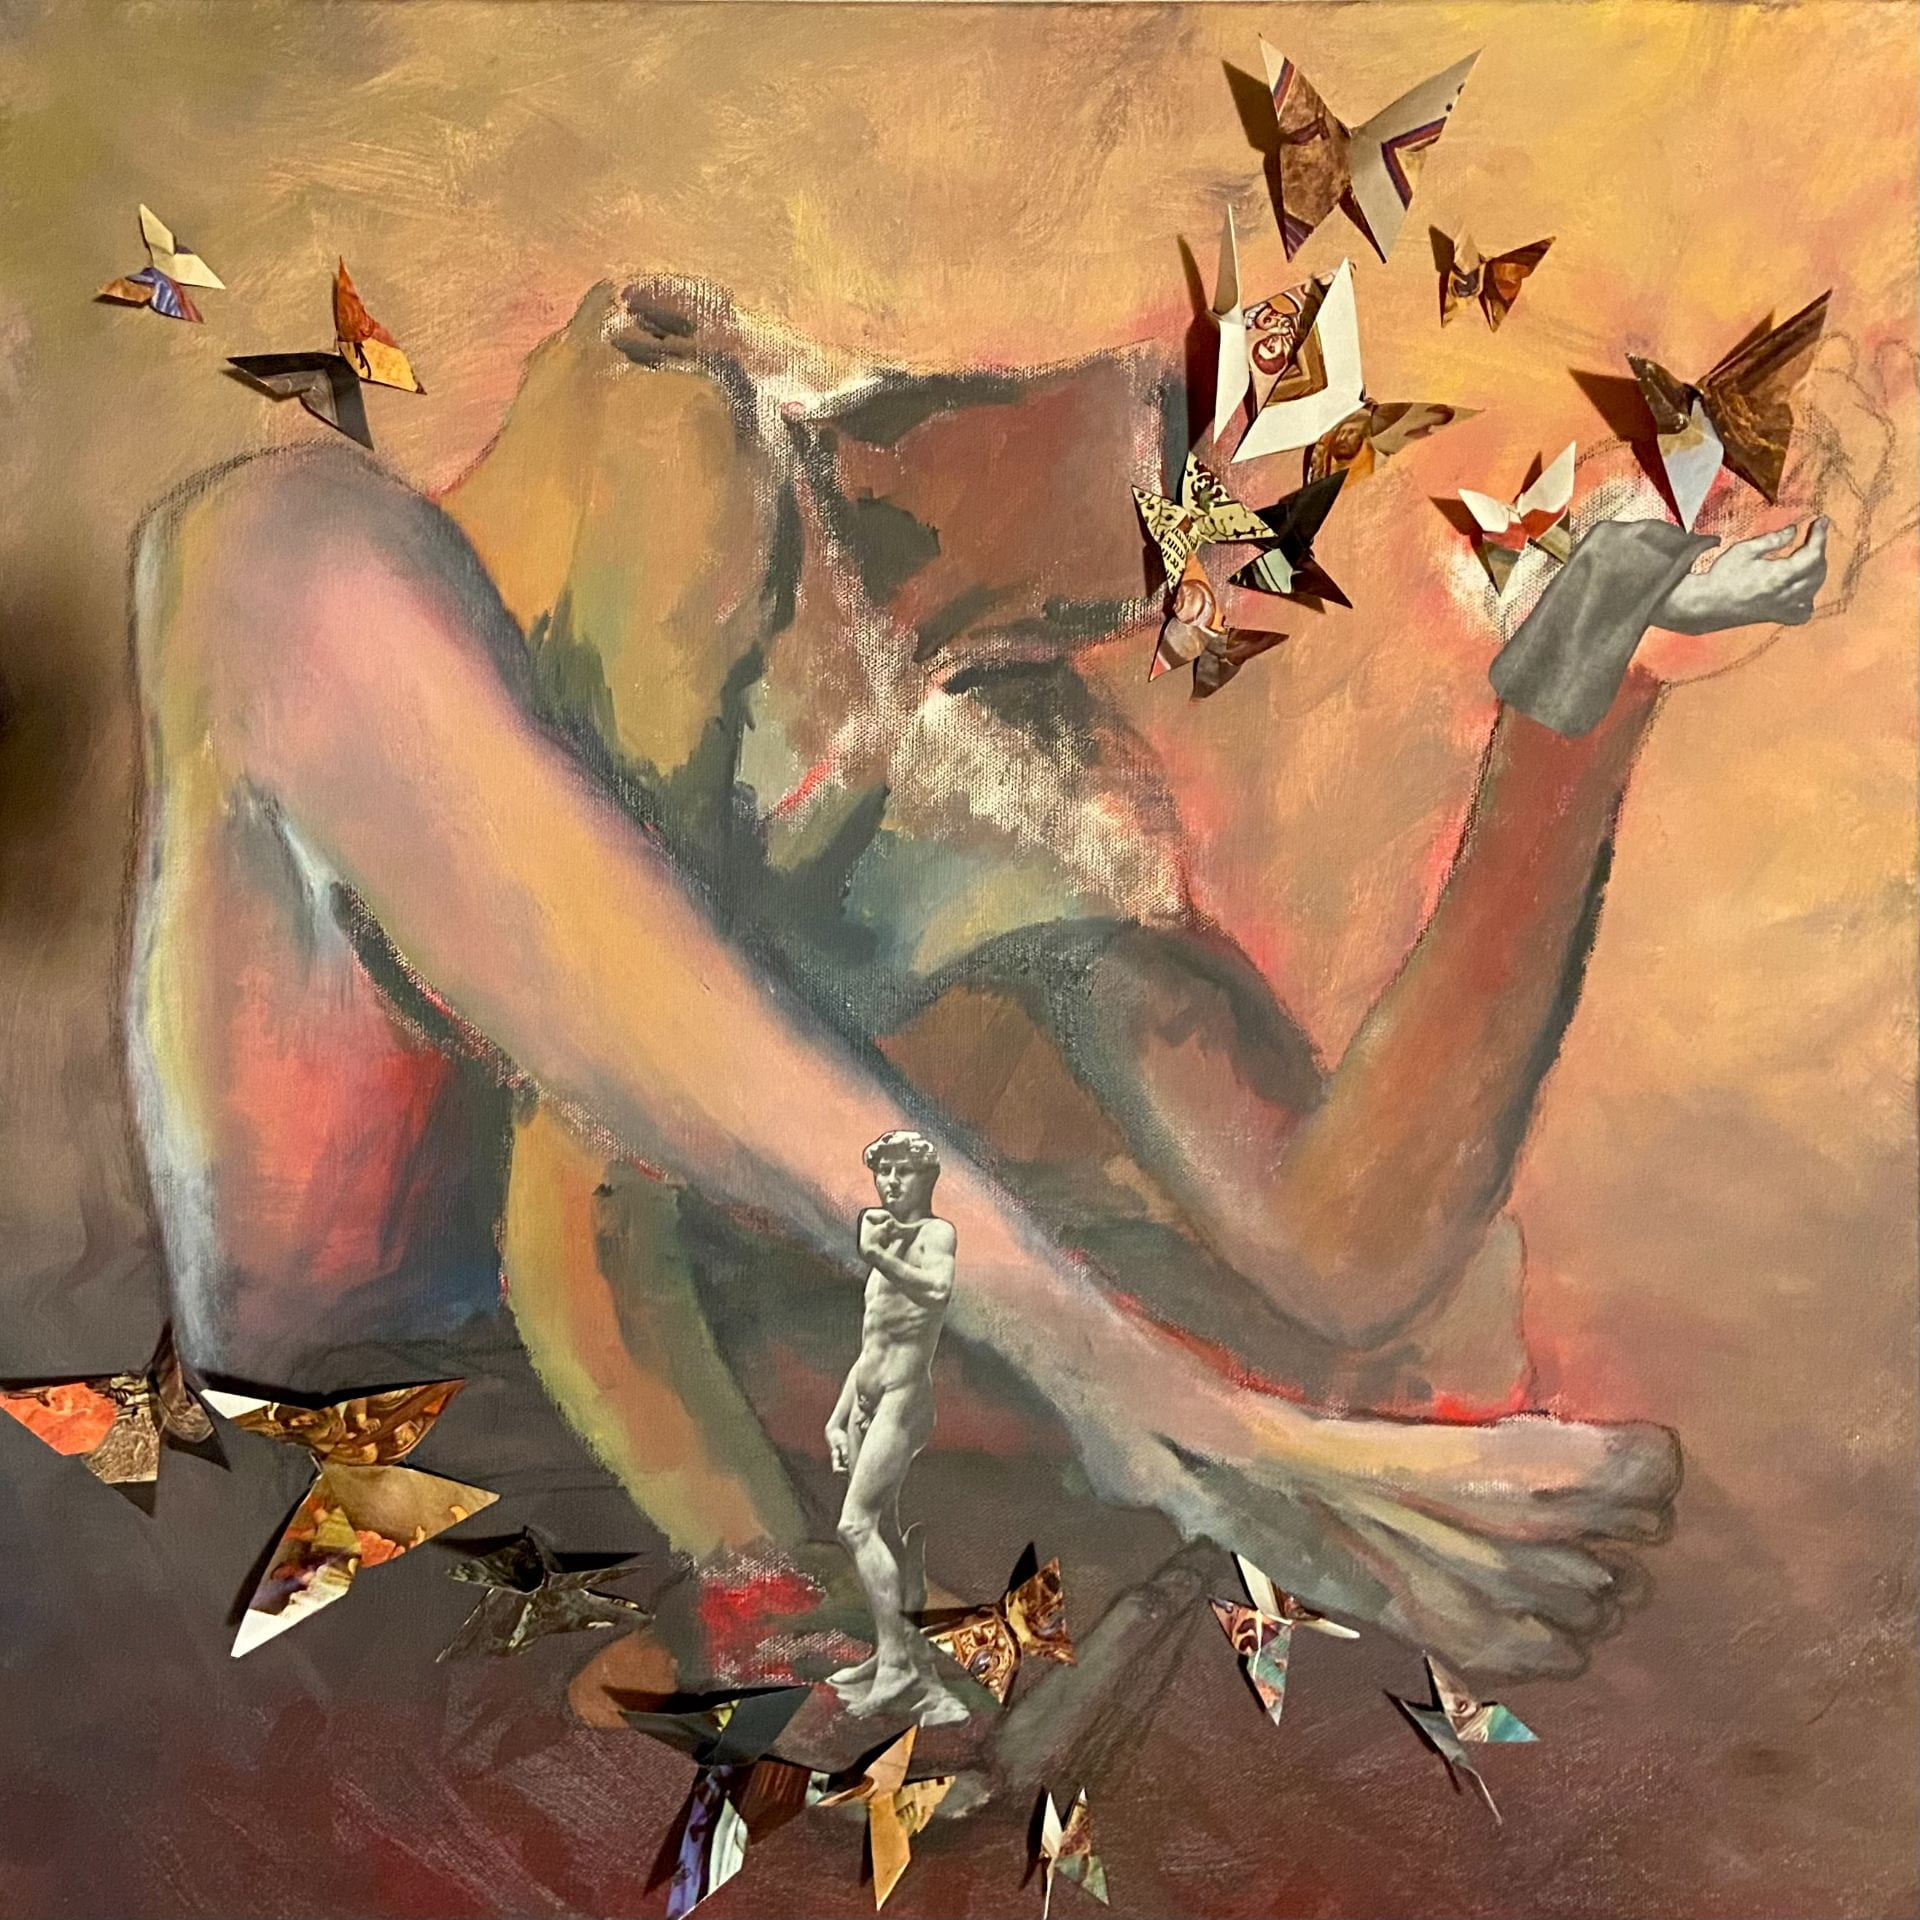 Surreal painting of a body seated with legs loosely crossed. One arm threaded under a leg holds a statue of David in the hand. The other arm, resting on a knee, holds up the hand from a statue. A group of butterflies replaces the body's head, and circles around each hand.